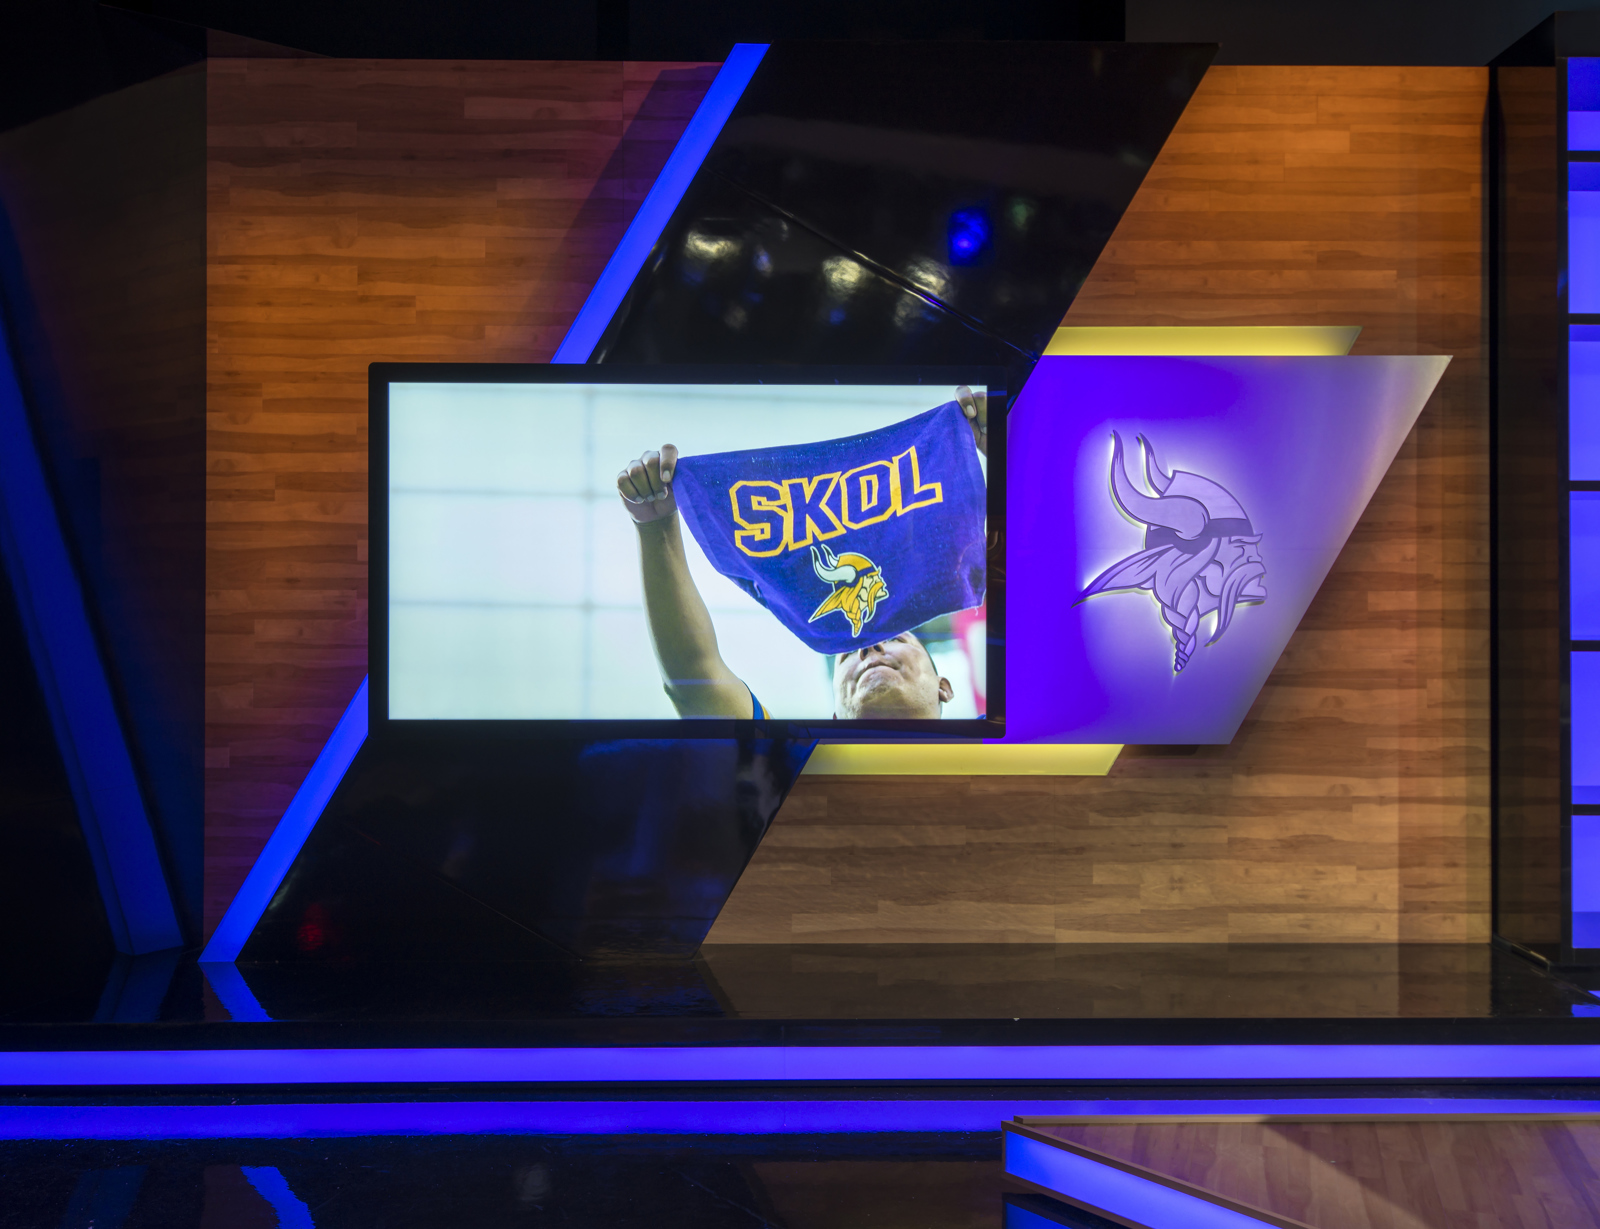 Minnesota Vikings - Vikings Entertainment Network studio